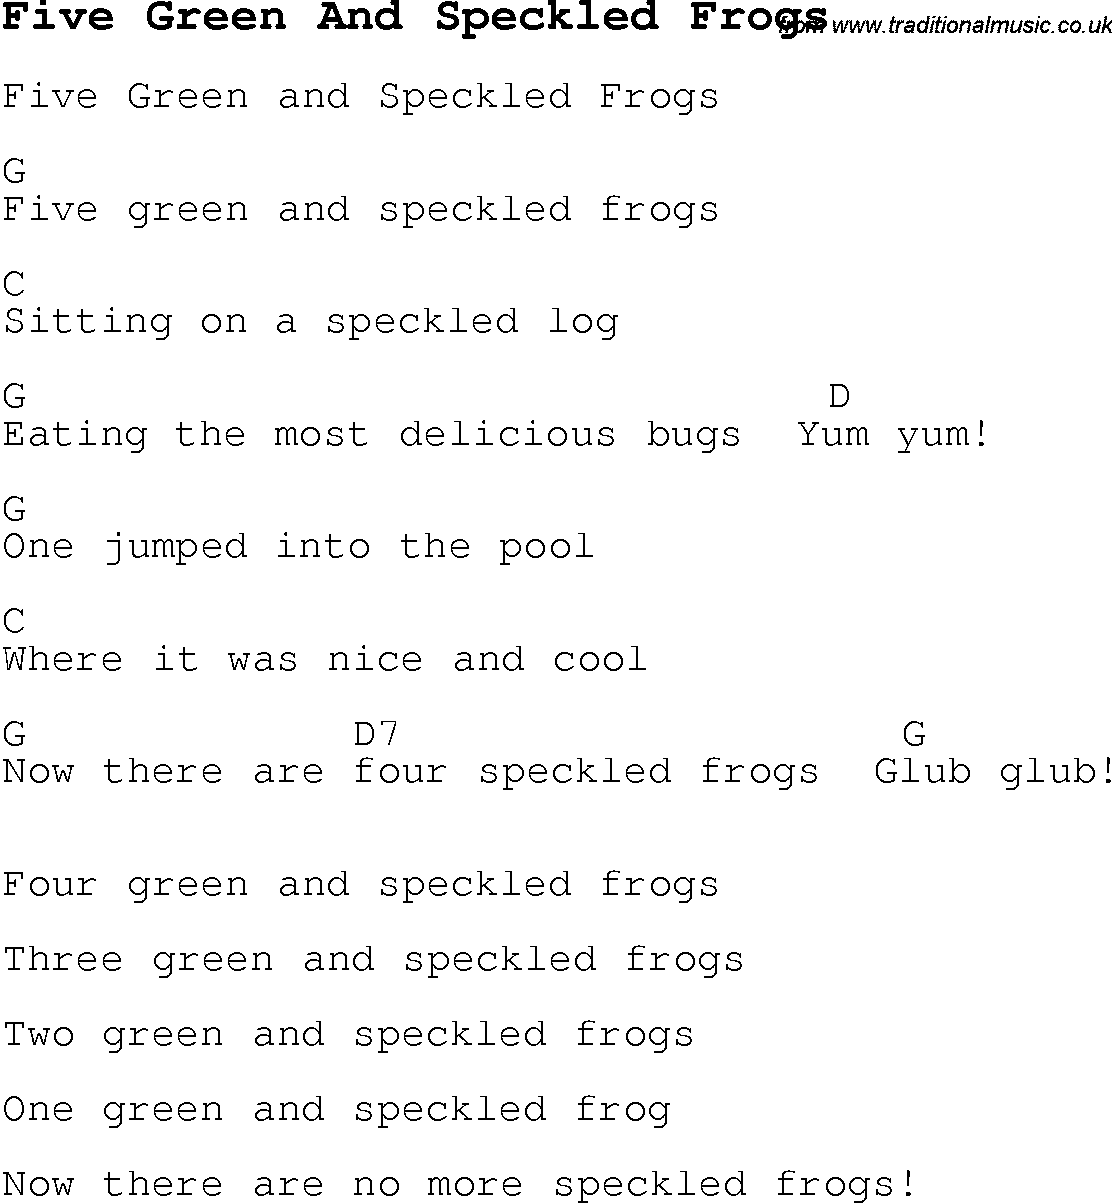 Childrens Songs And Nursery Rhymes Lyrics With Chords For